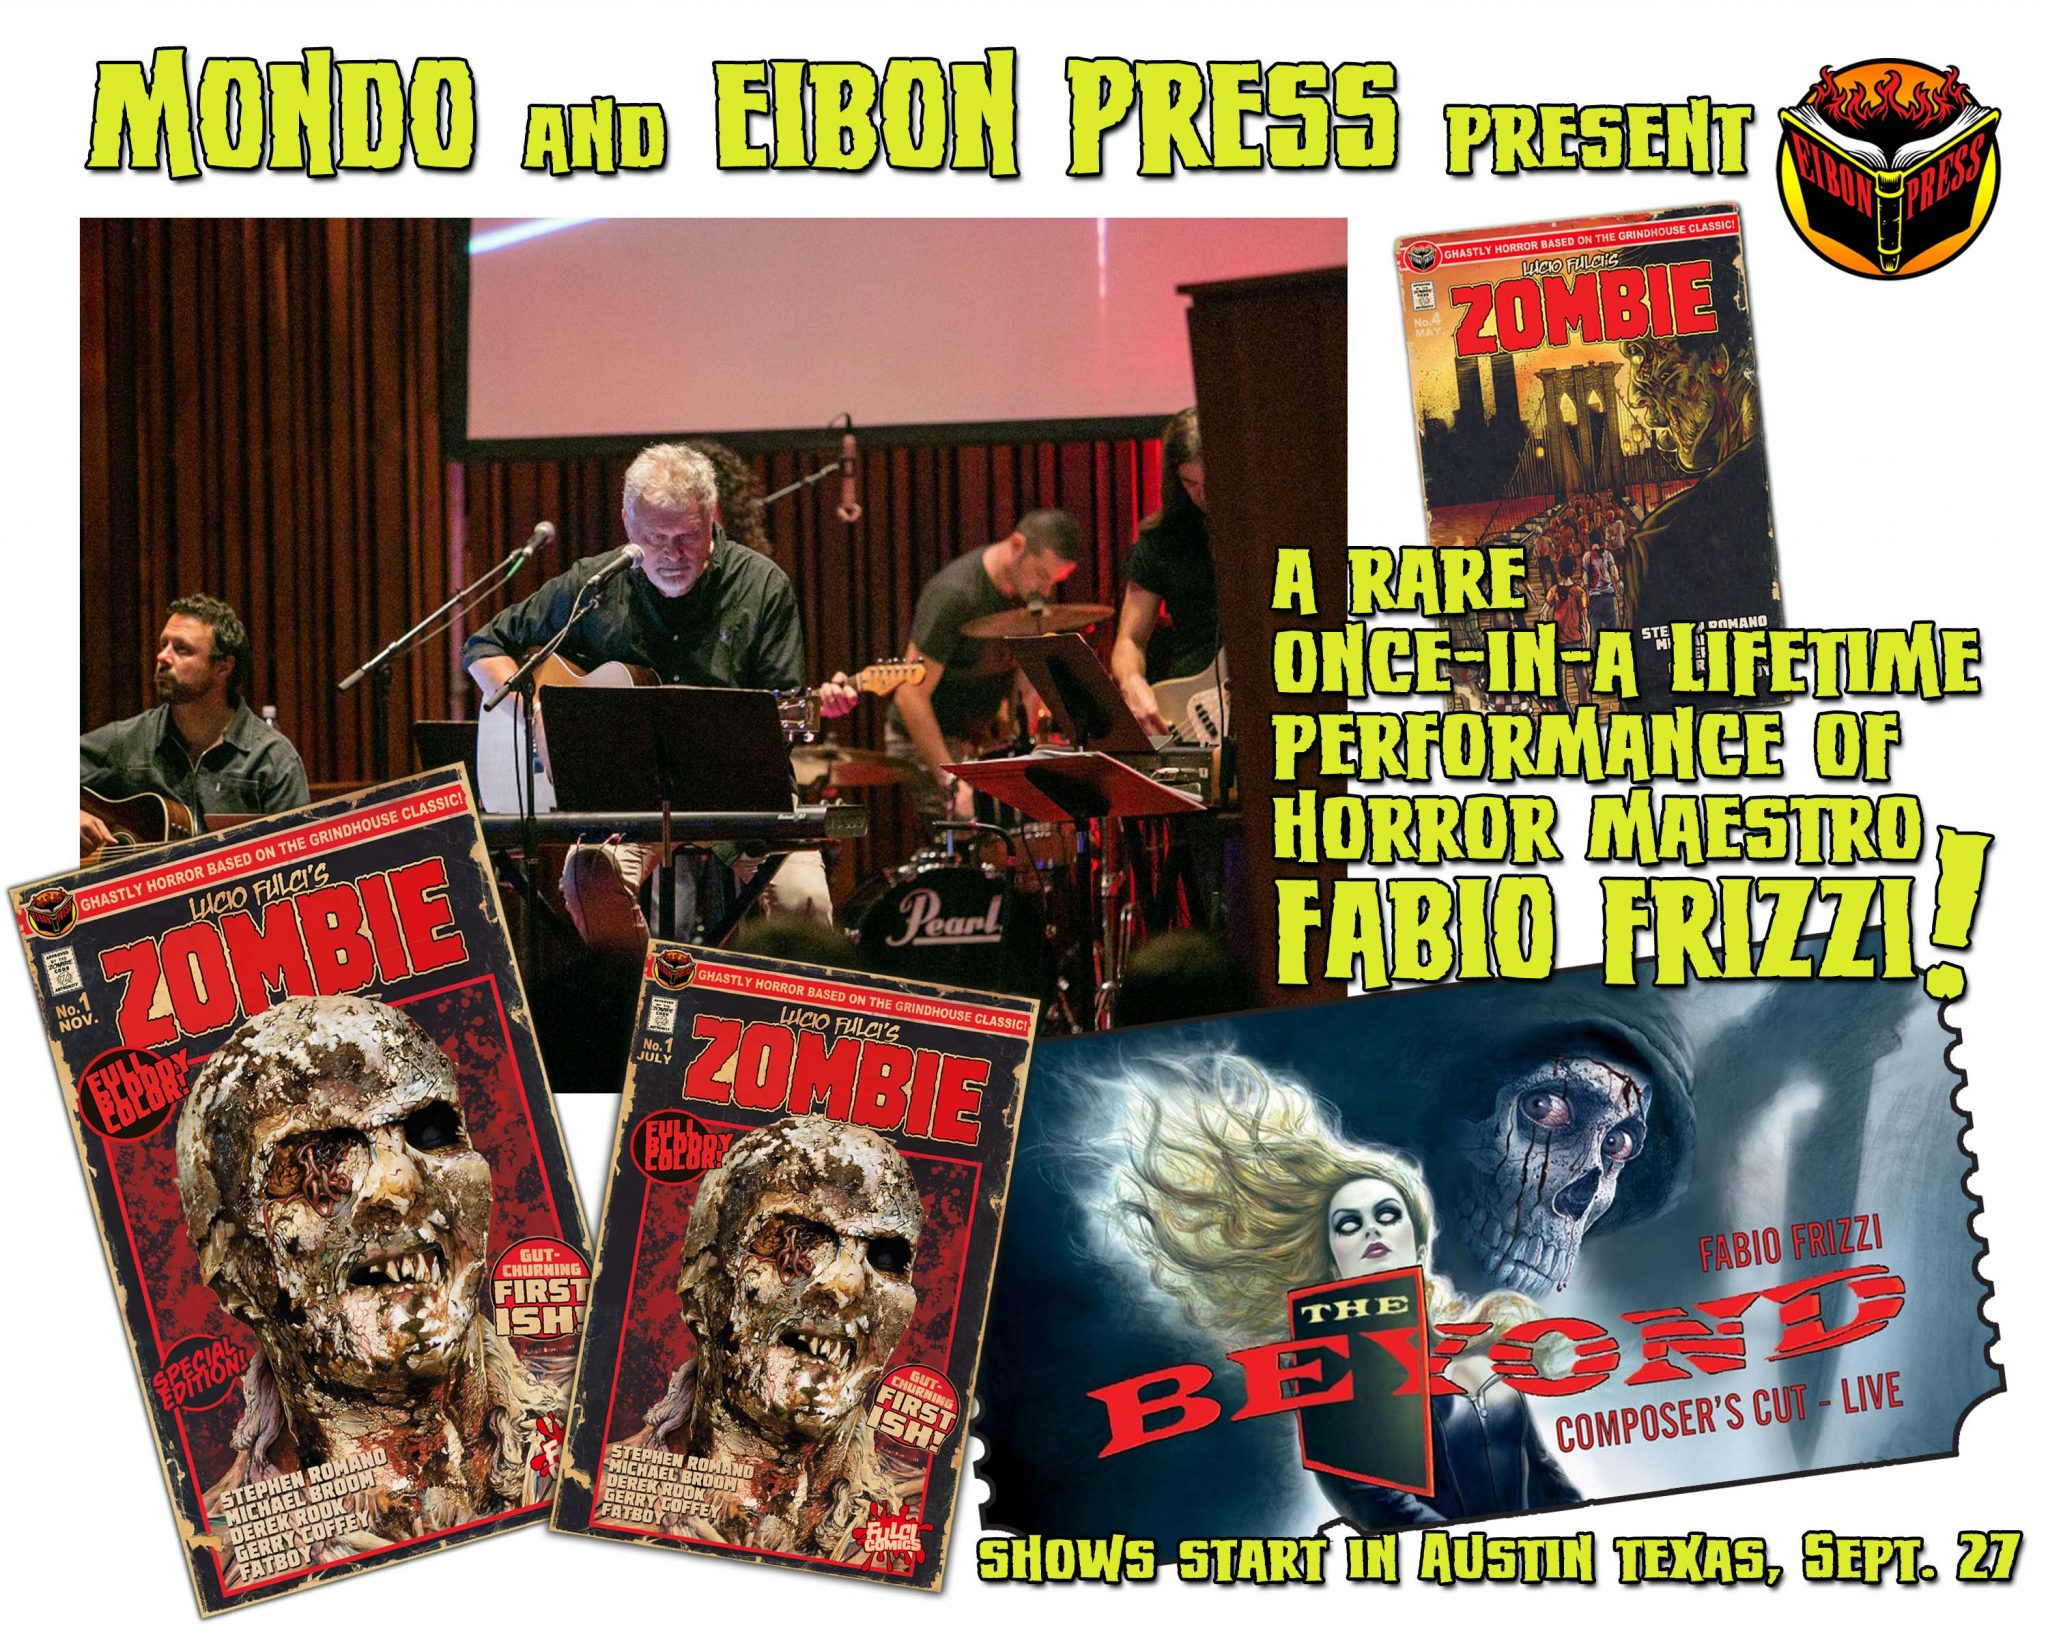 FRIZZI EIBON MONDO PROMO - Eibon Press Announces Fabio Frizzi/Fulci Comics Contest WINNERS!